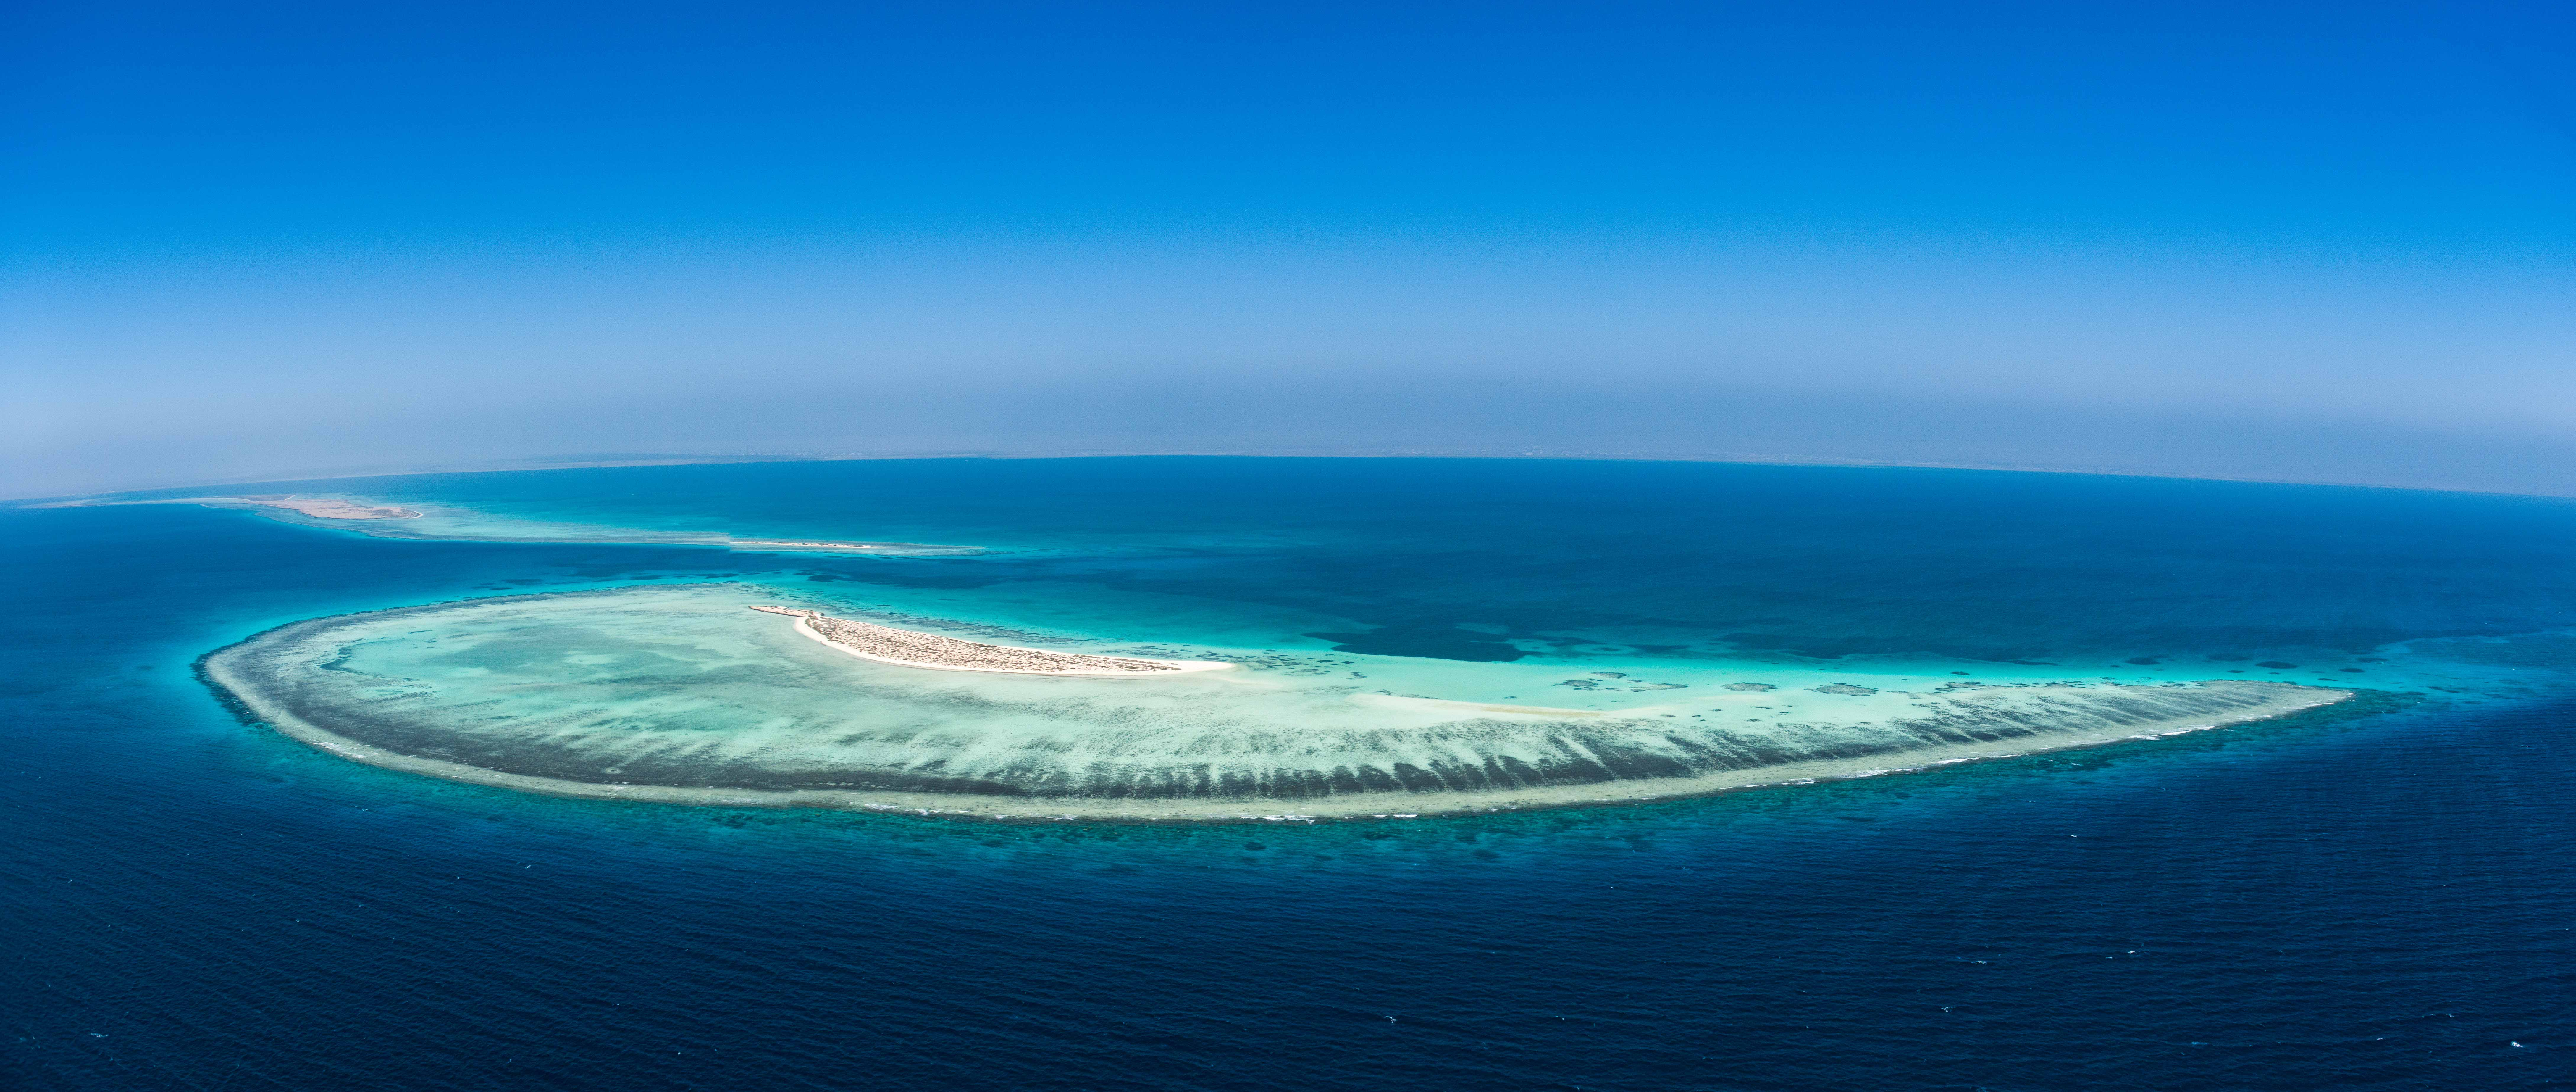 The Red Sea Project on Saudi Arabia's west coast is envisioned as an ultra-luxury tourism destination for nature, adventure, wellness, and culture